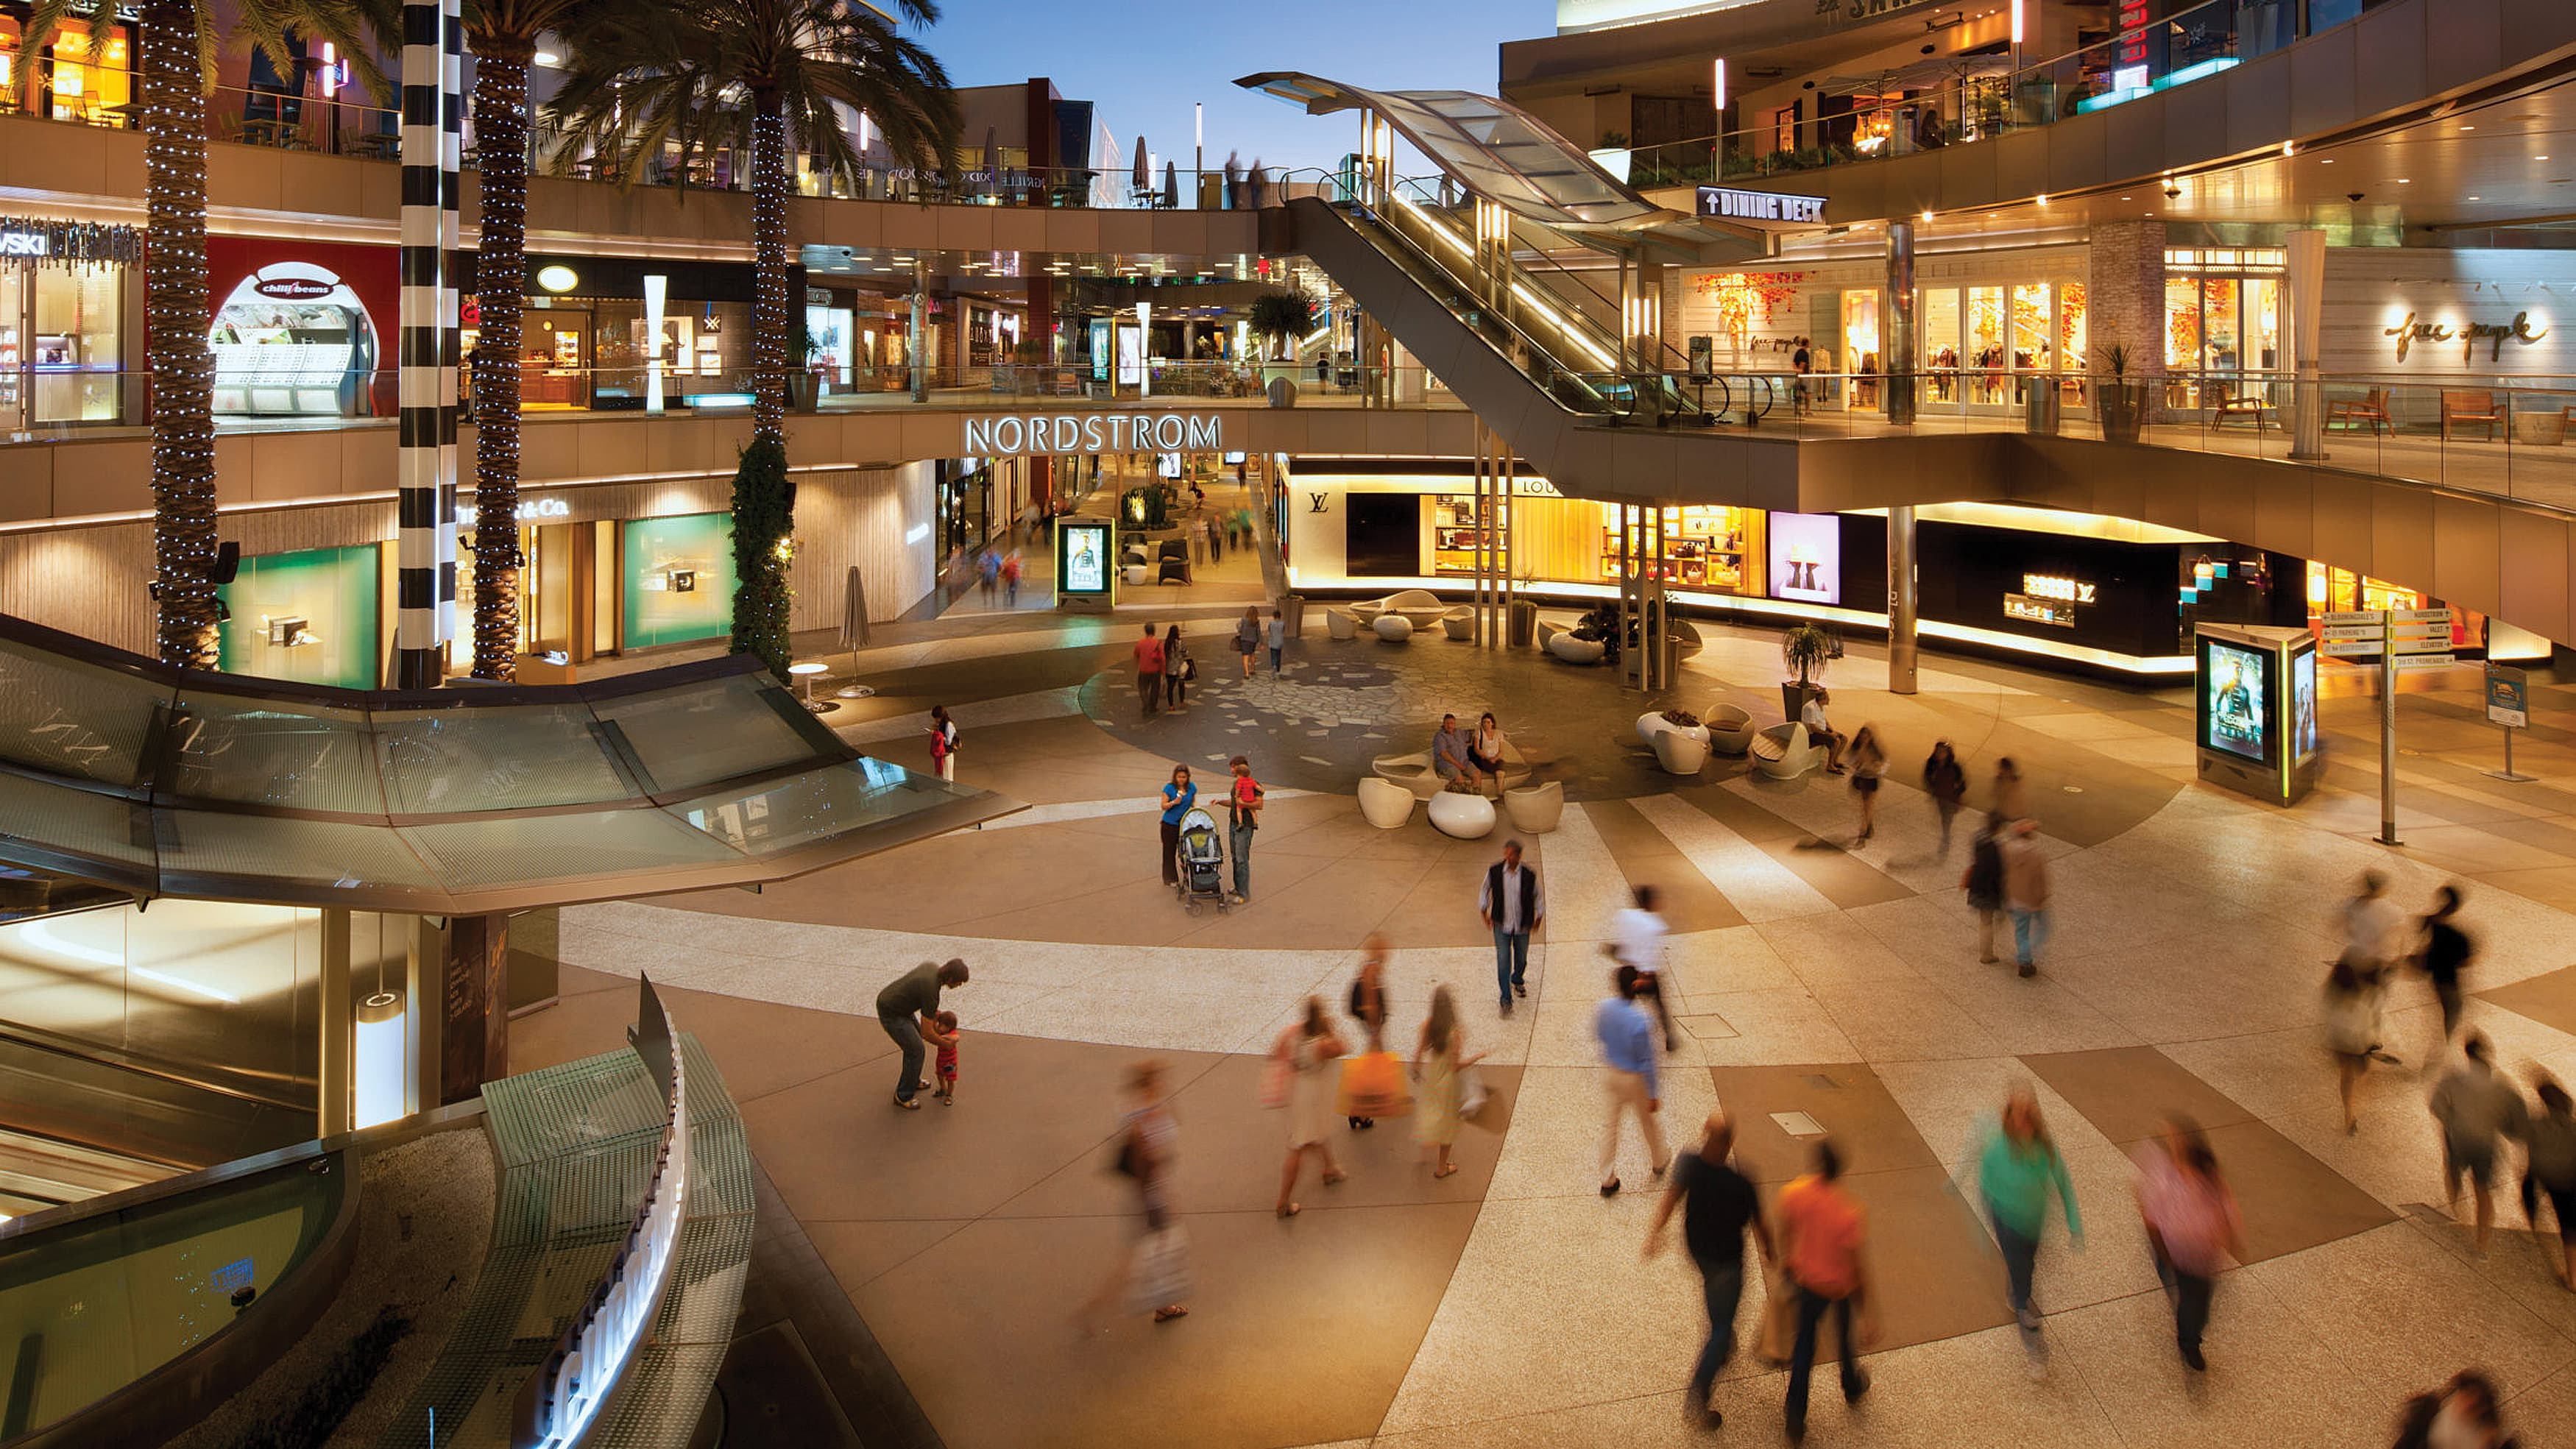 Image of people walking around and shopping at Santa Monica Place.